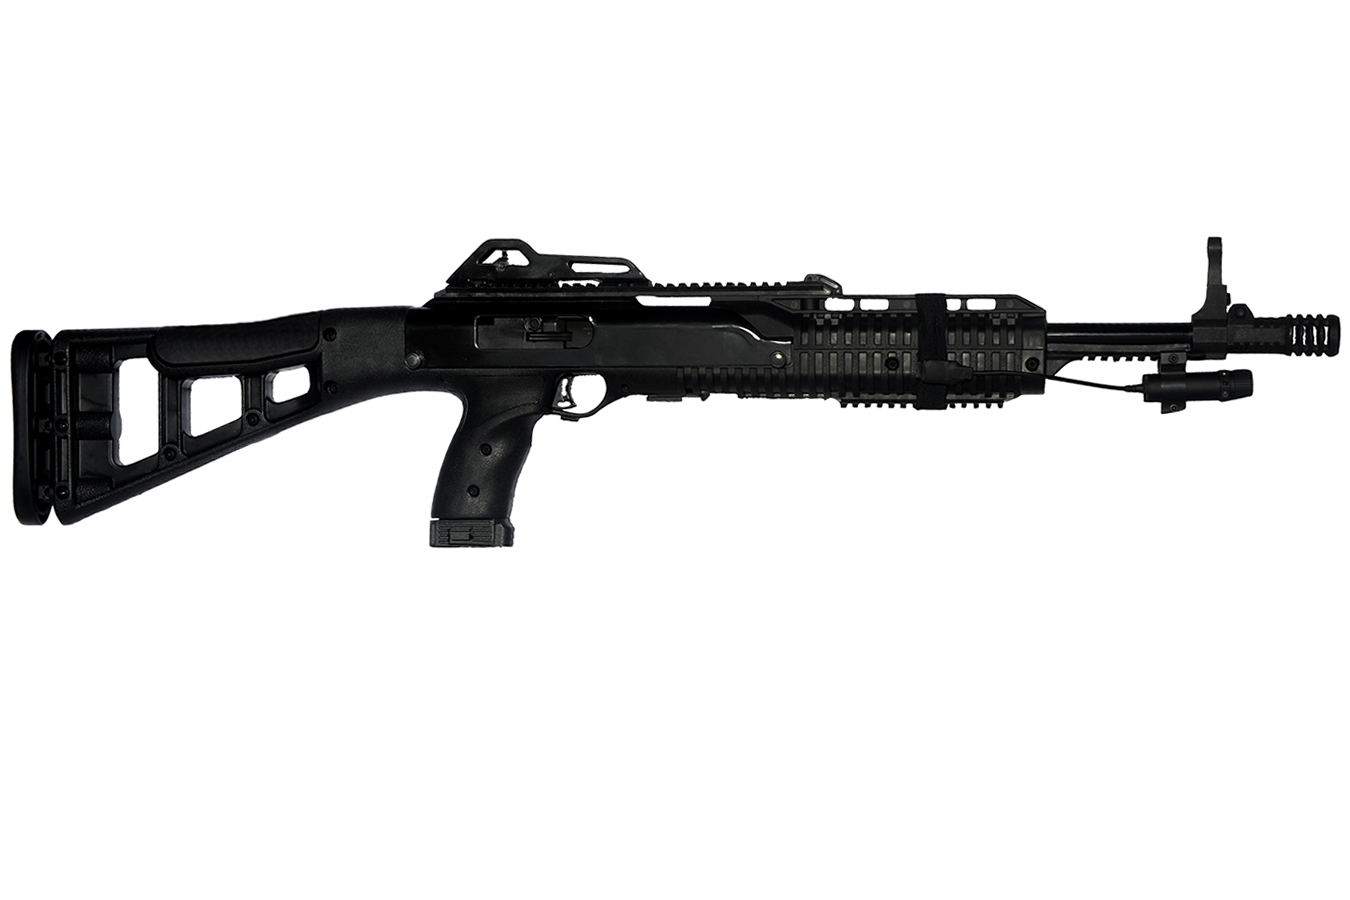 HI POINT 4095TS 40SW CARBINE WITH LASER